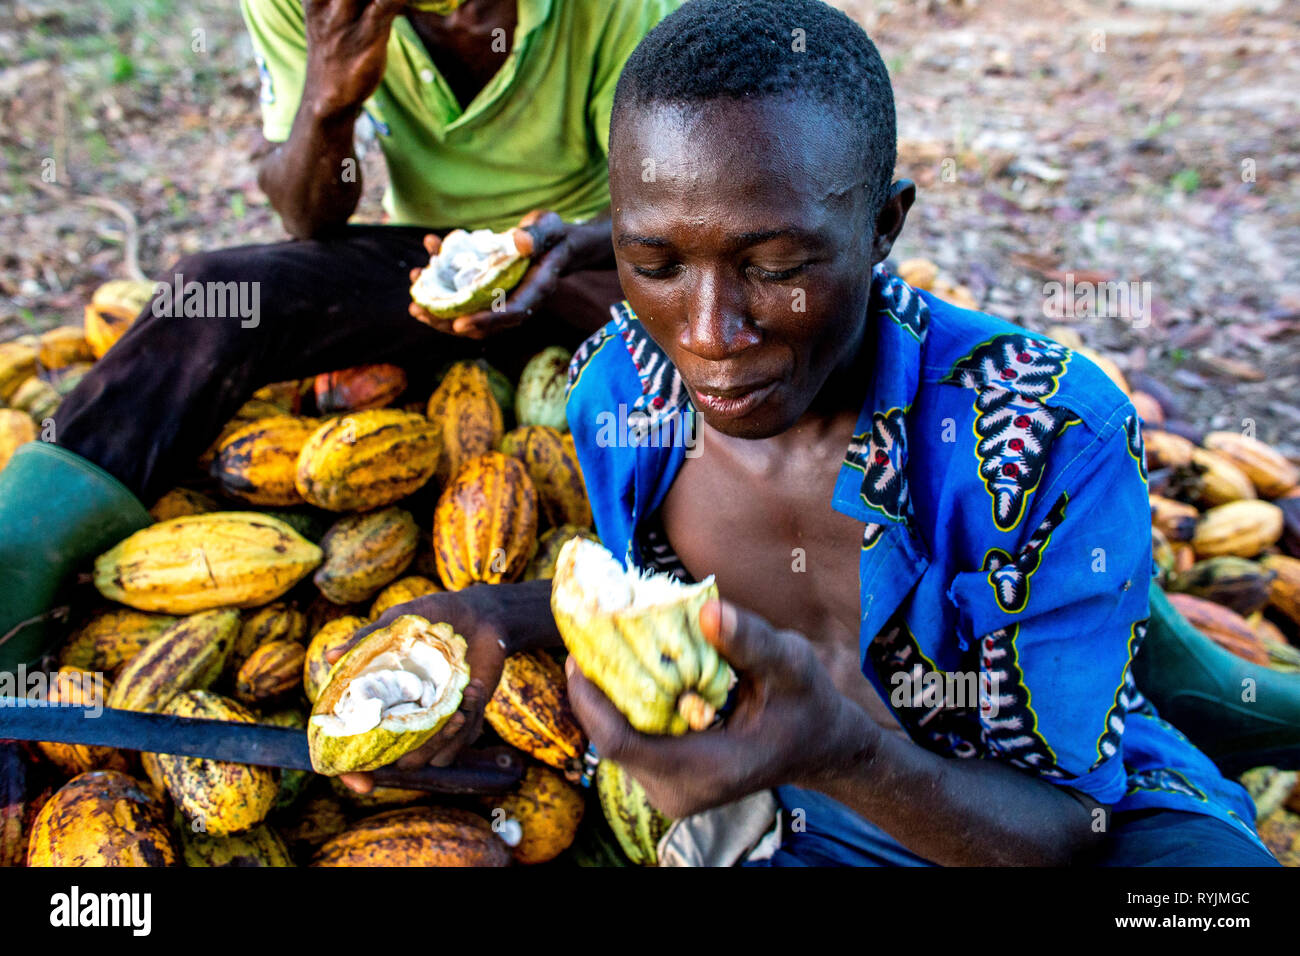 Cocoa planters eating cocoa mulch near Agboville, Ivory Coast. Stock Photo